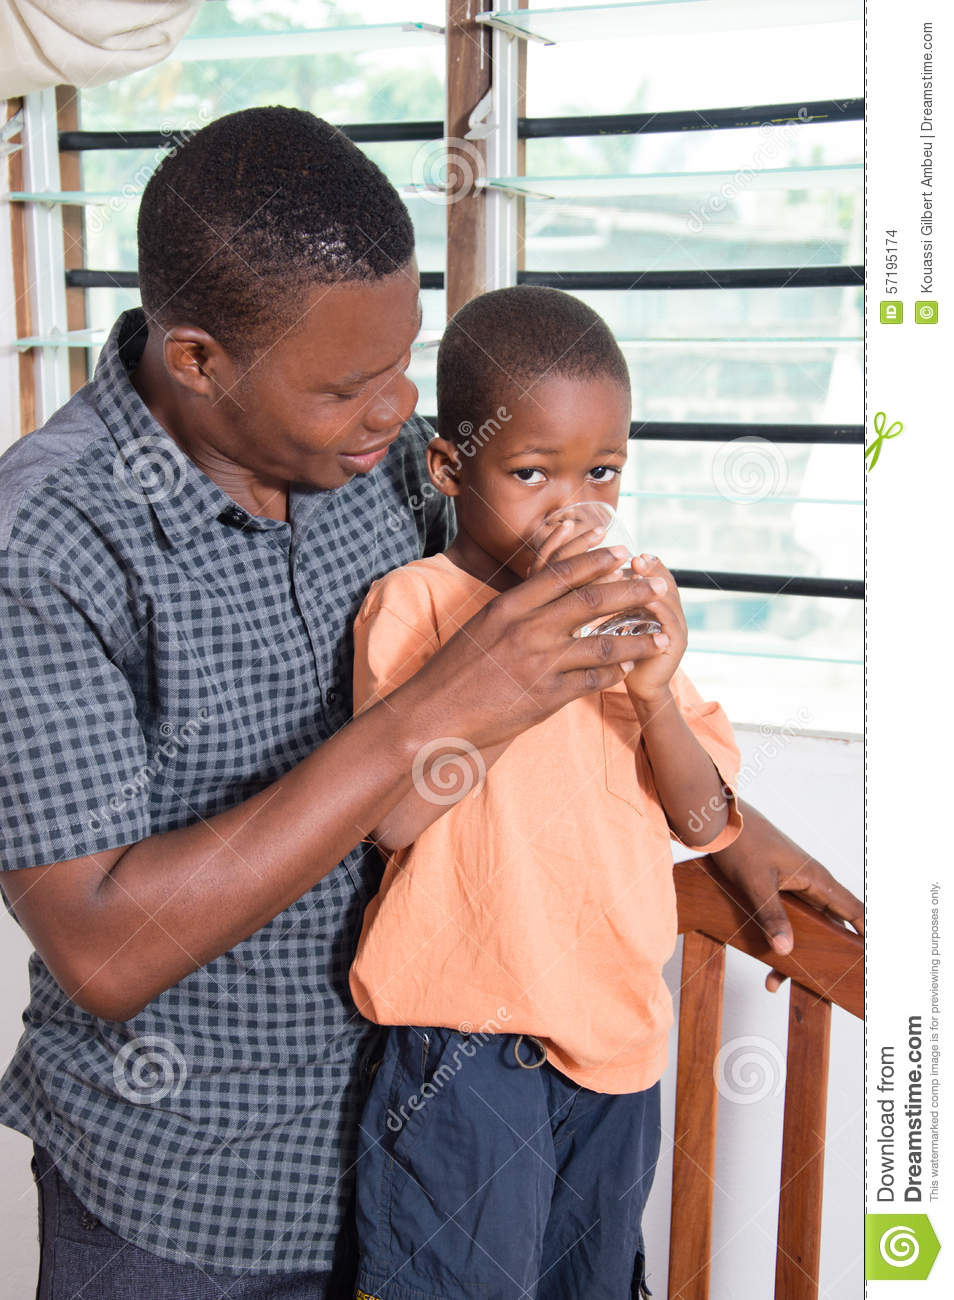 Dad gives water to drink to his child